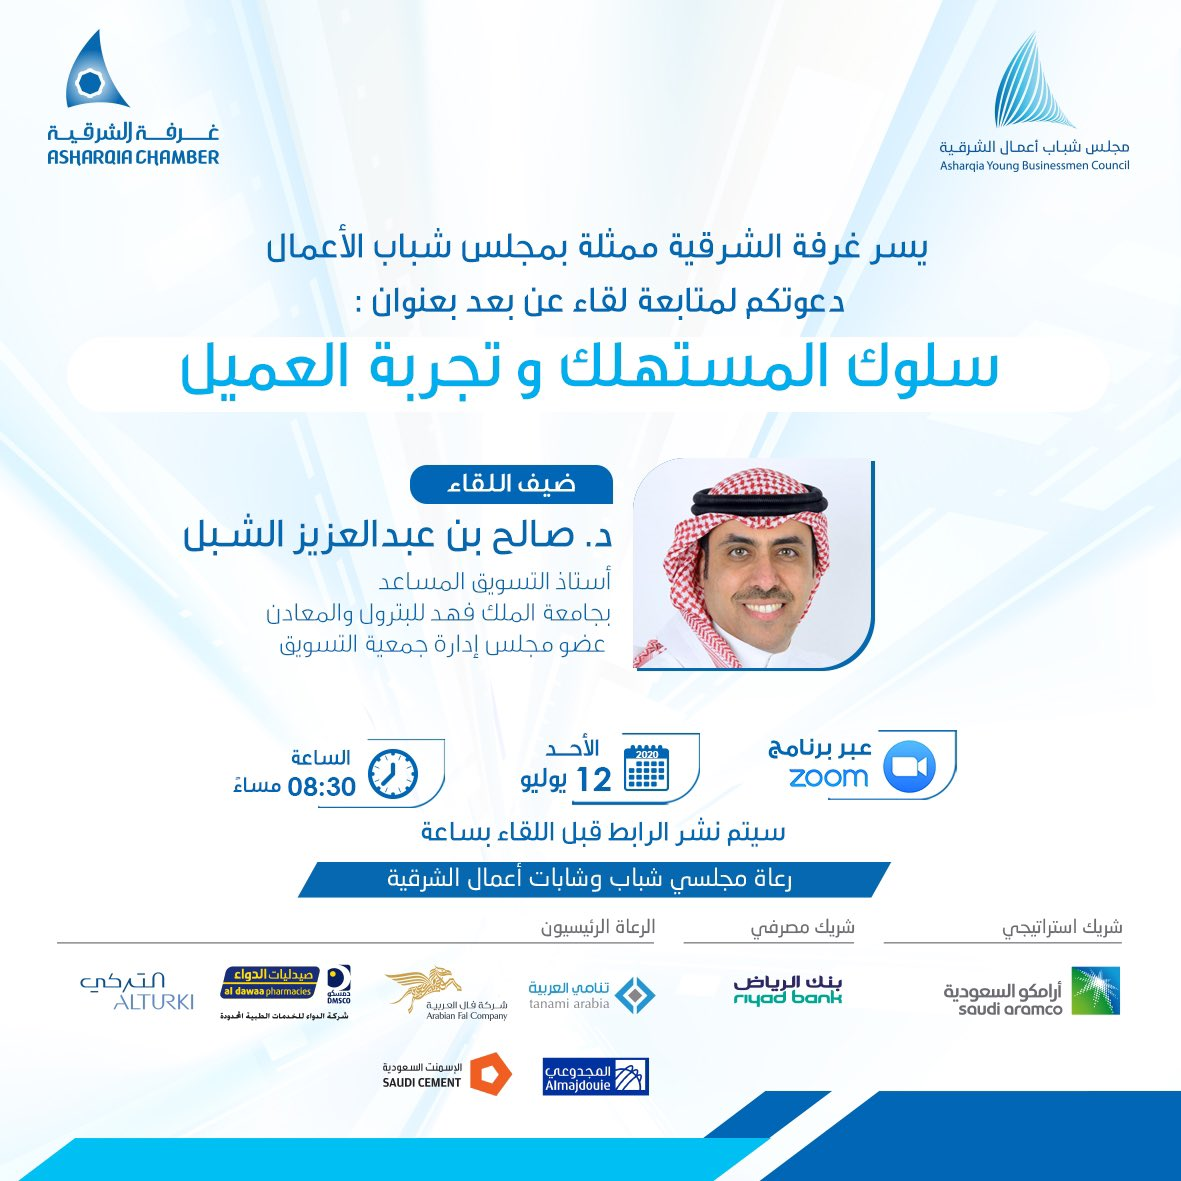 Make sure not to miss this exciting webinar by @alshebil  #KFUPM  @KfupmBSC